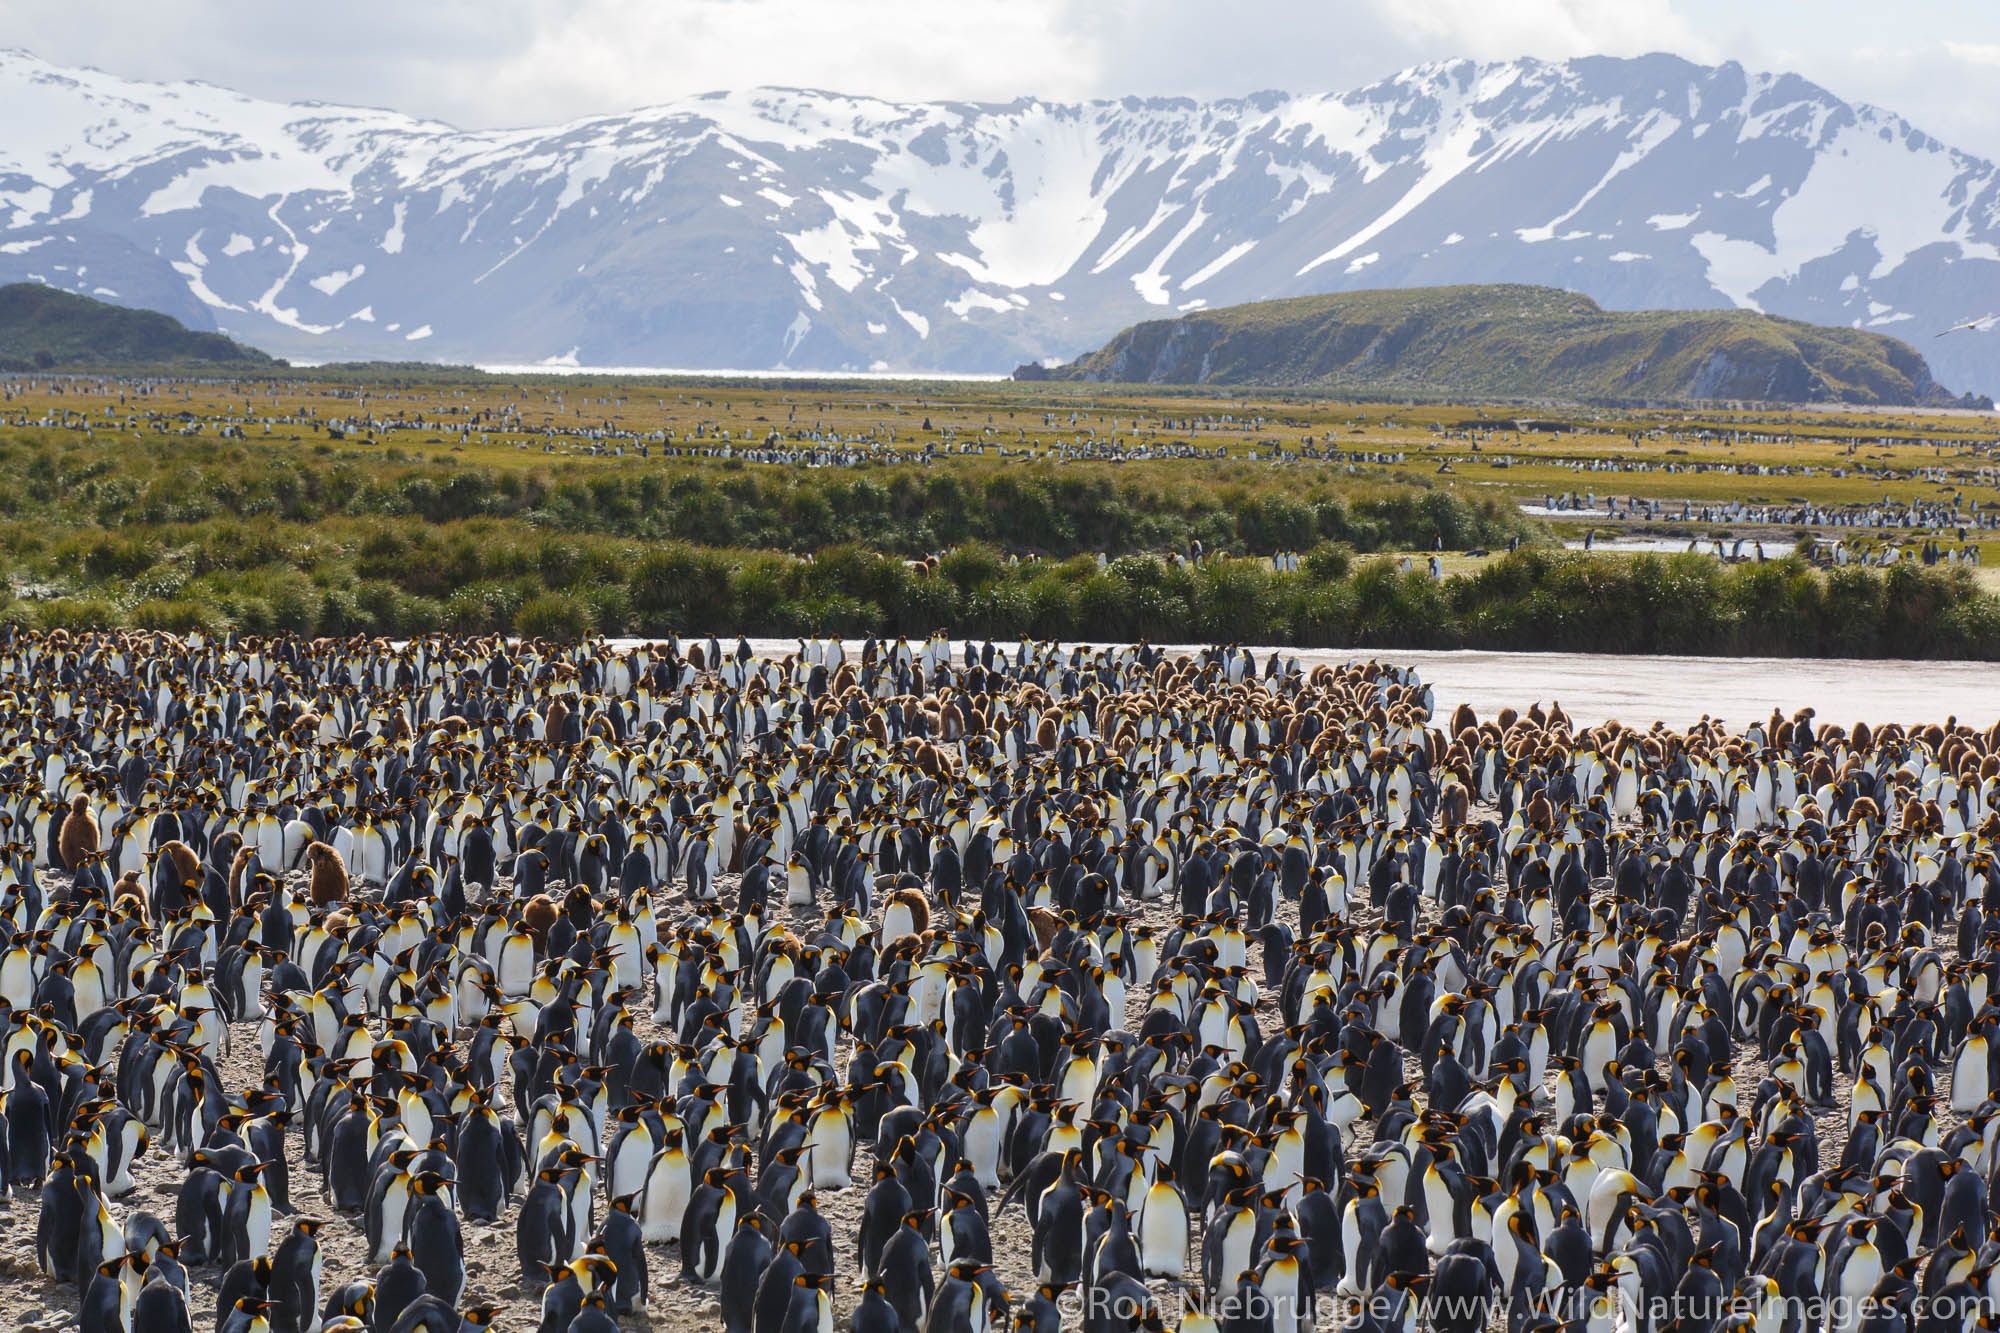 King penguins (Aptenodytes patagonicus) on the Salisbury Plain, South Georgia, Antarctica.